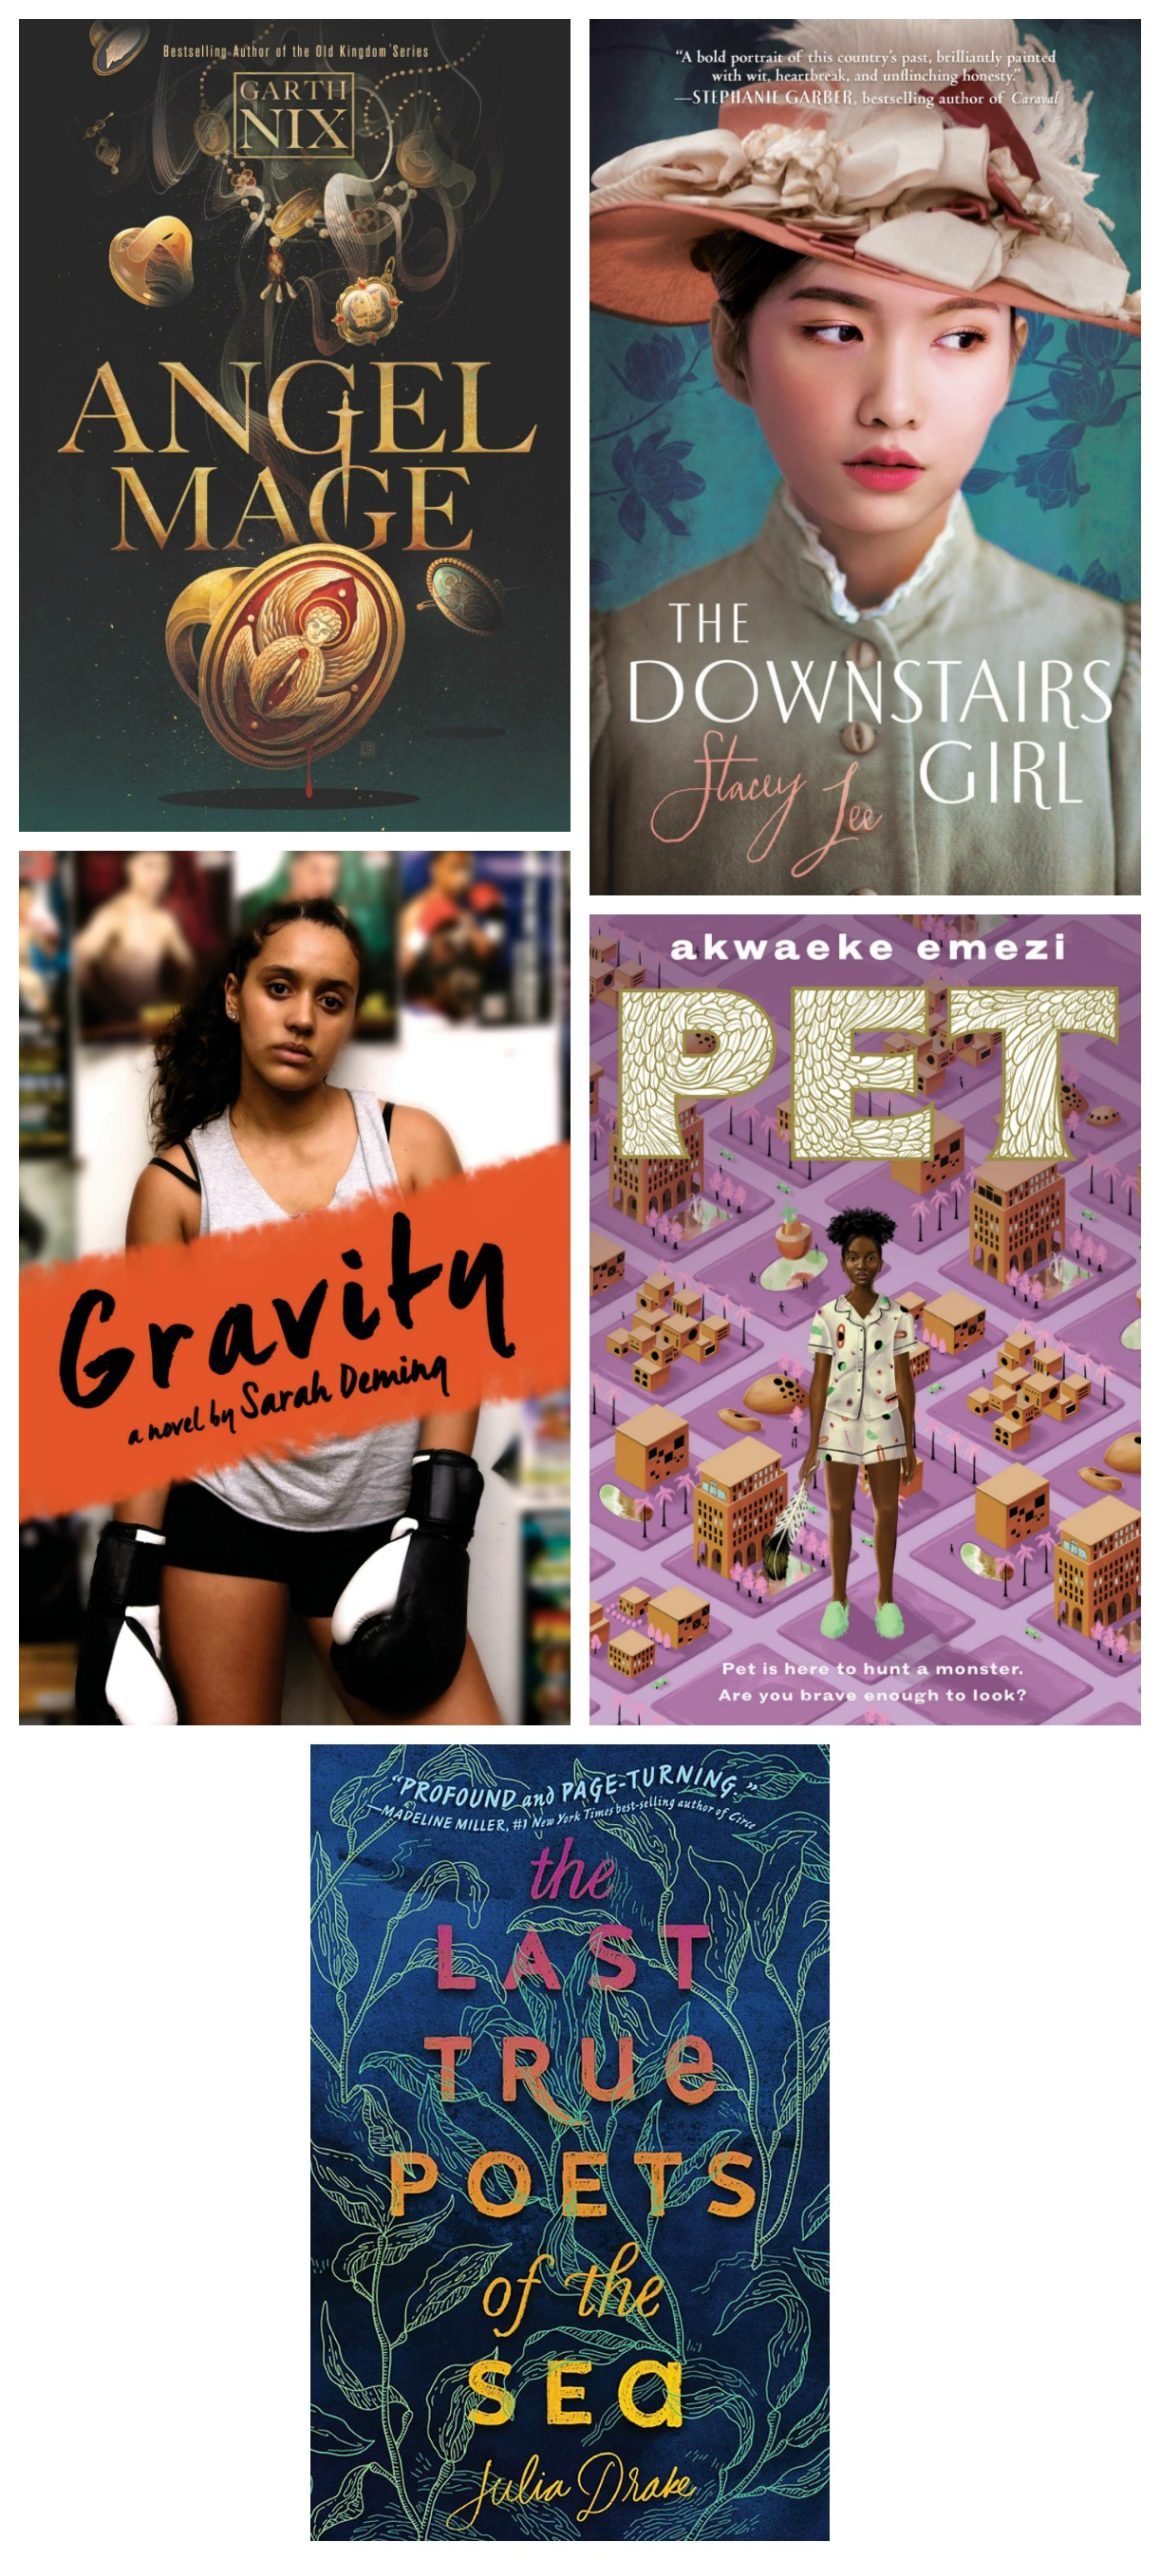 The best children's books of 2019: The Publisher's Weekly choices for best YA books